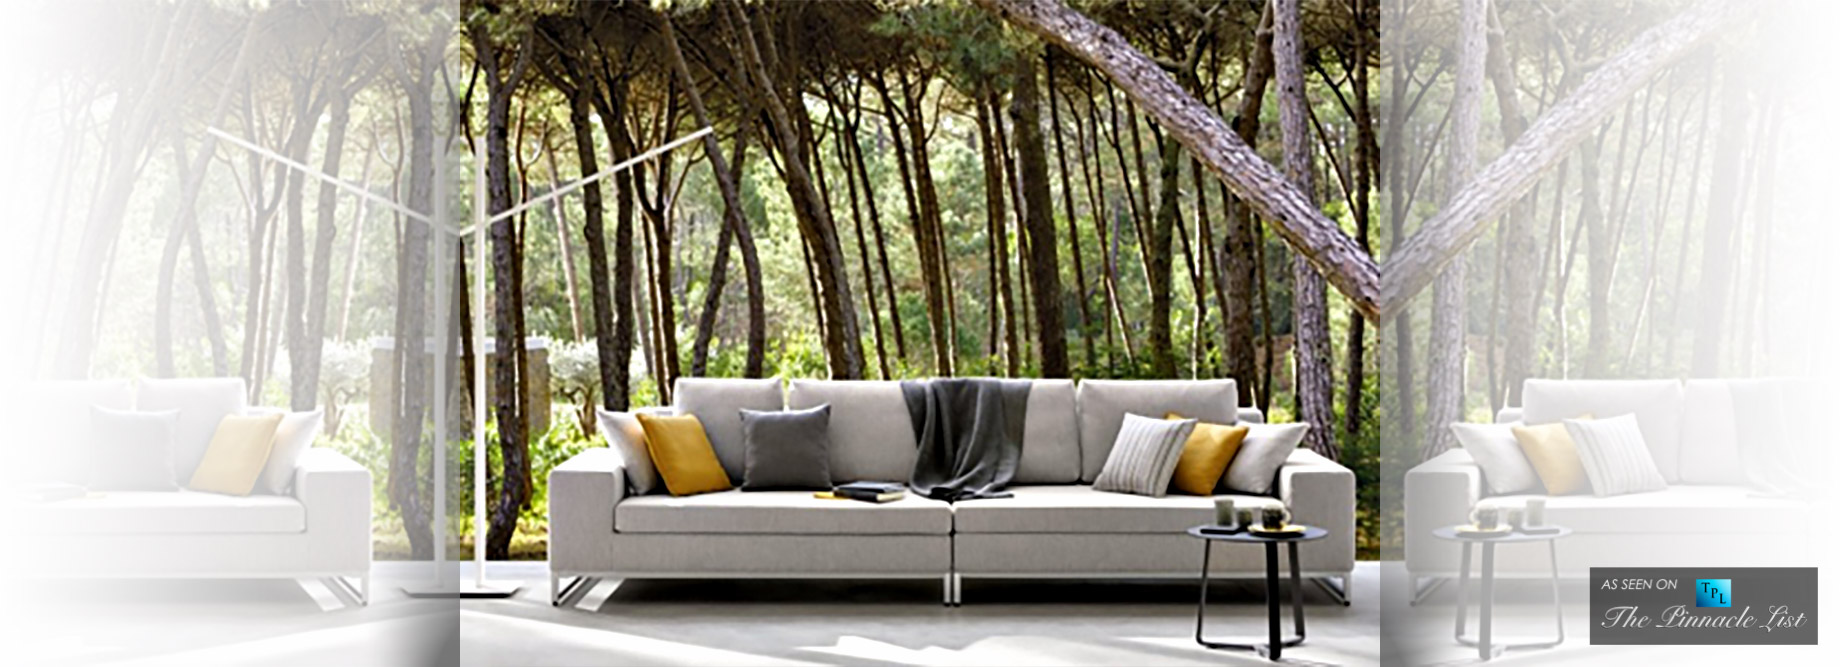 Hot Fare - Outdoor Luxury Living with Furniture for Australian Winter Entertaining